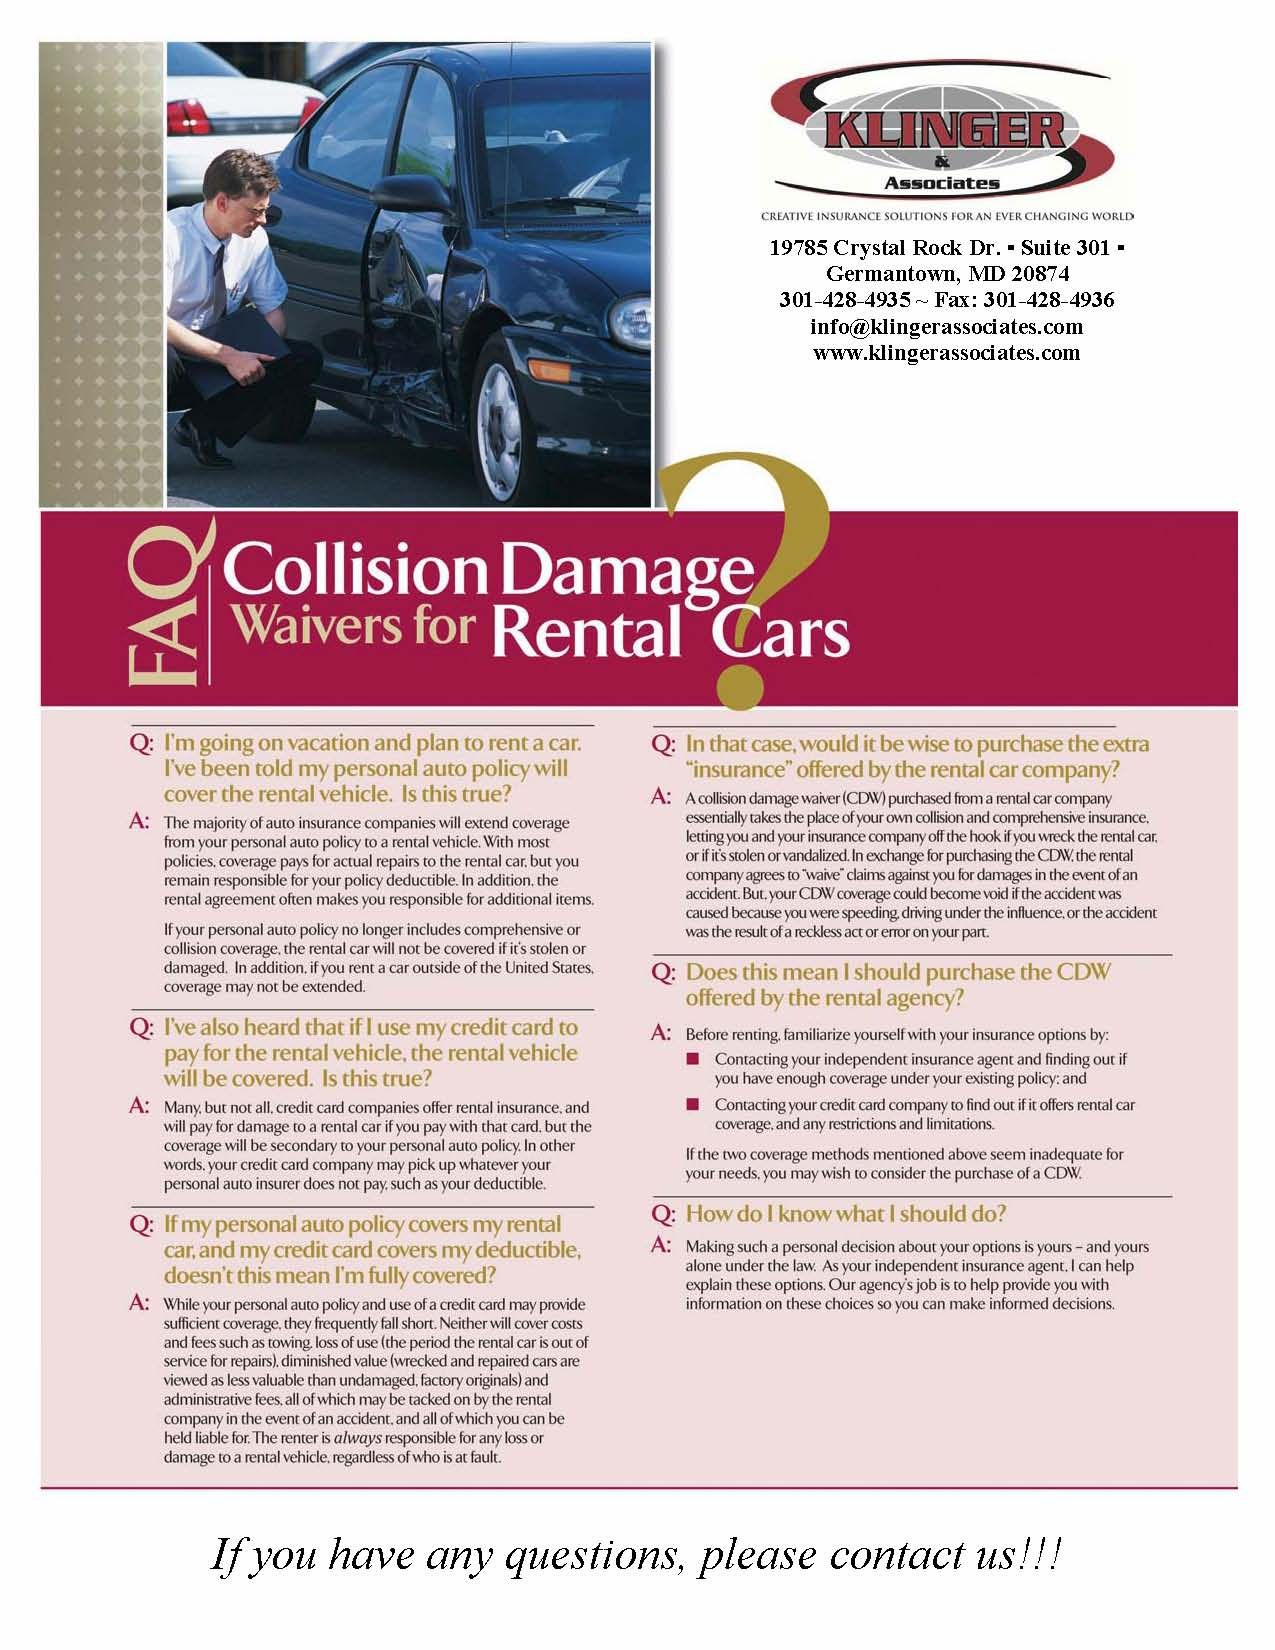 Faq Collision Damage Waivers For Rental Cars Carinsurance Insurance Claim Coverage Car Insurance Insurance